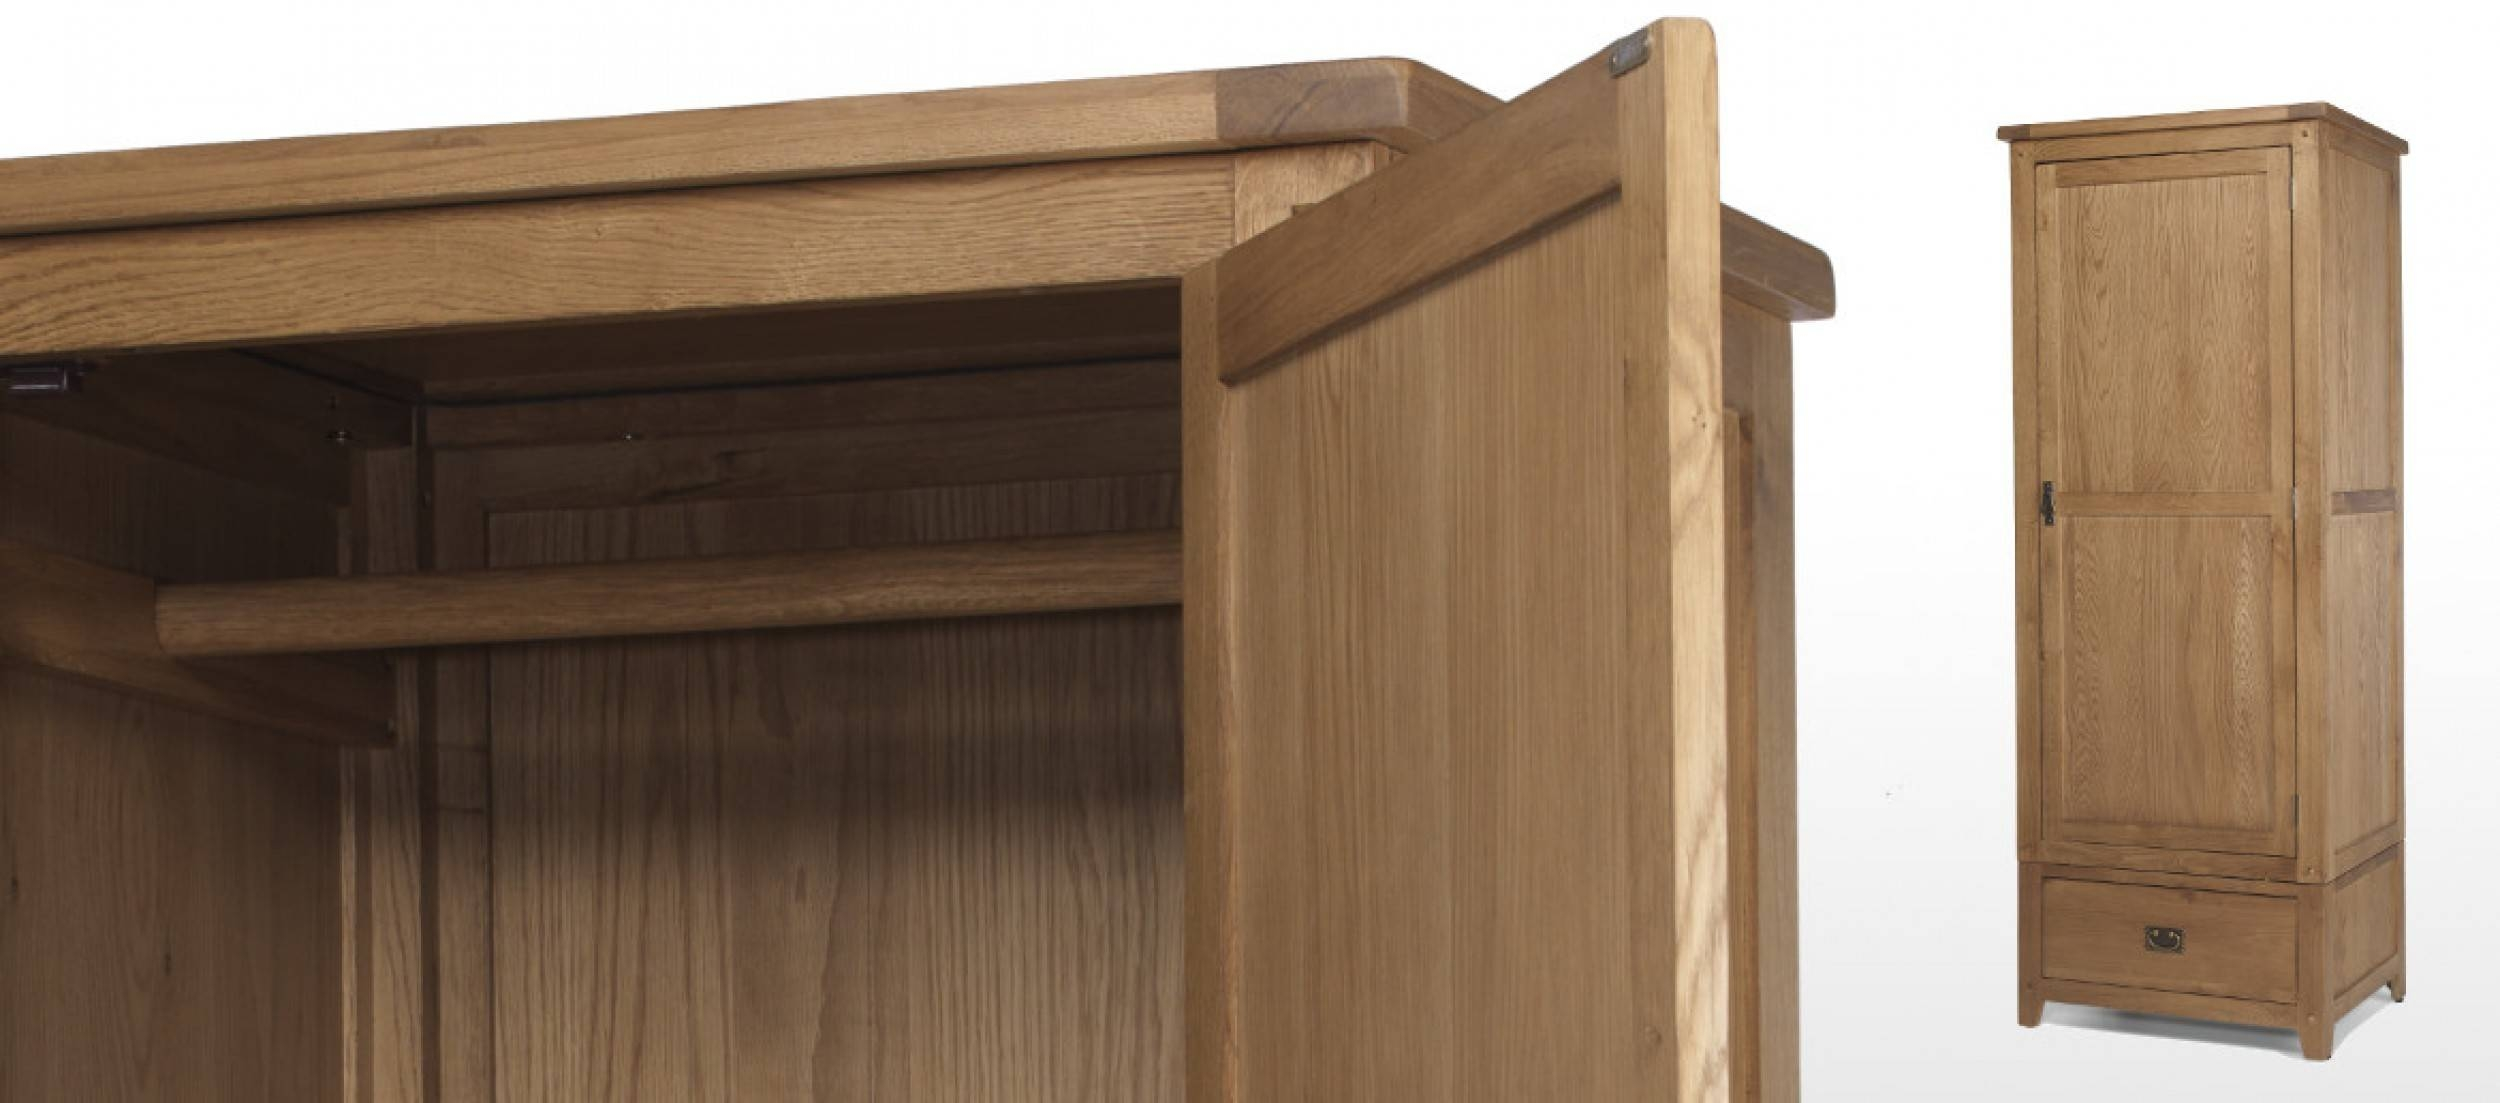 Rustic Oak Single Wardrobe | Quercus Living with Small Single Wardrobes (Image 8 of 15)